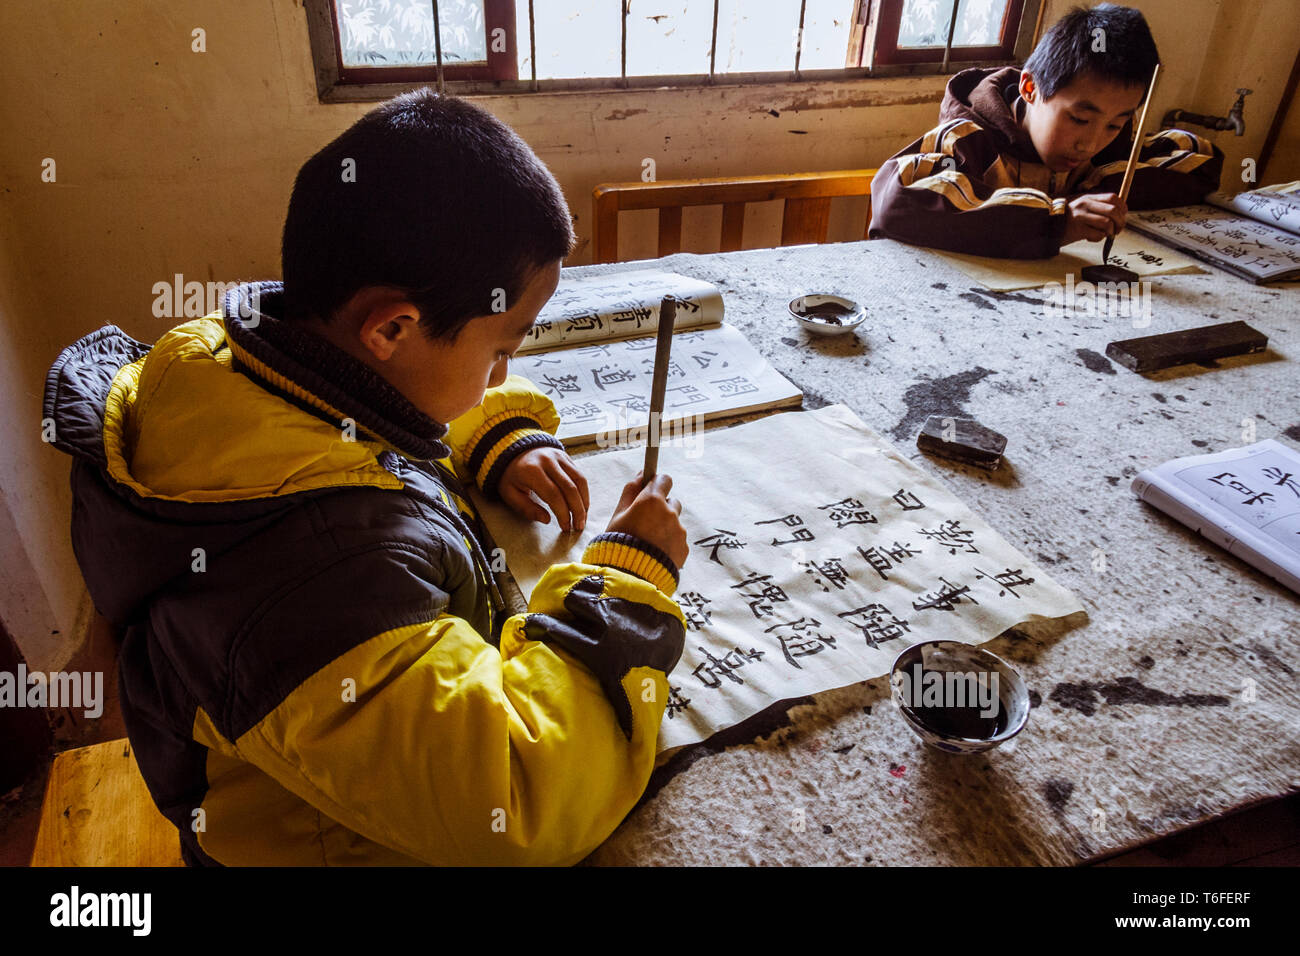 Lijiang, Yunnan province, China : Children practice at a traditional calligraphy school in the Old Town of Lijiang, a national historical and cultural - Stock Image